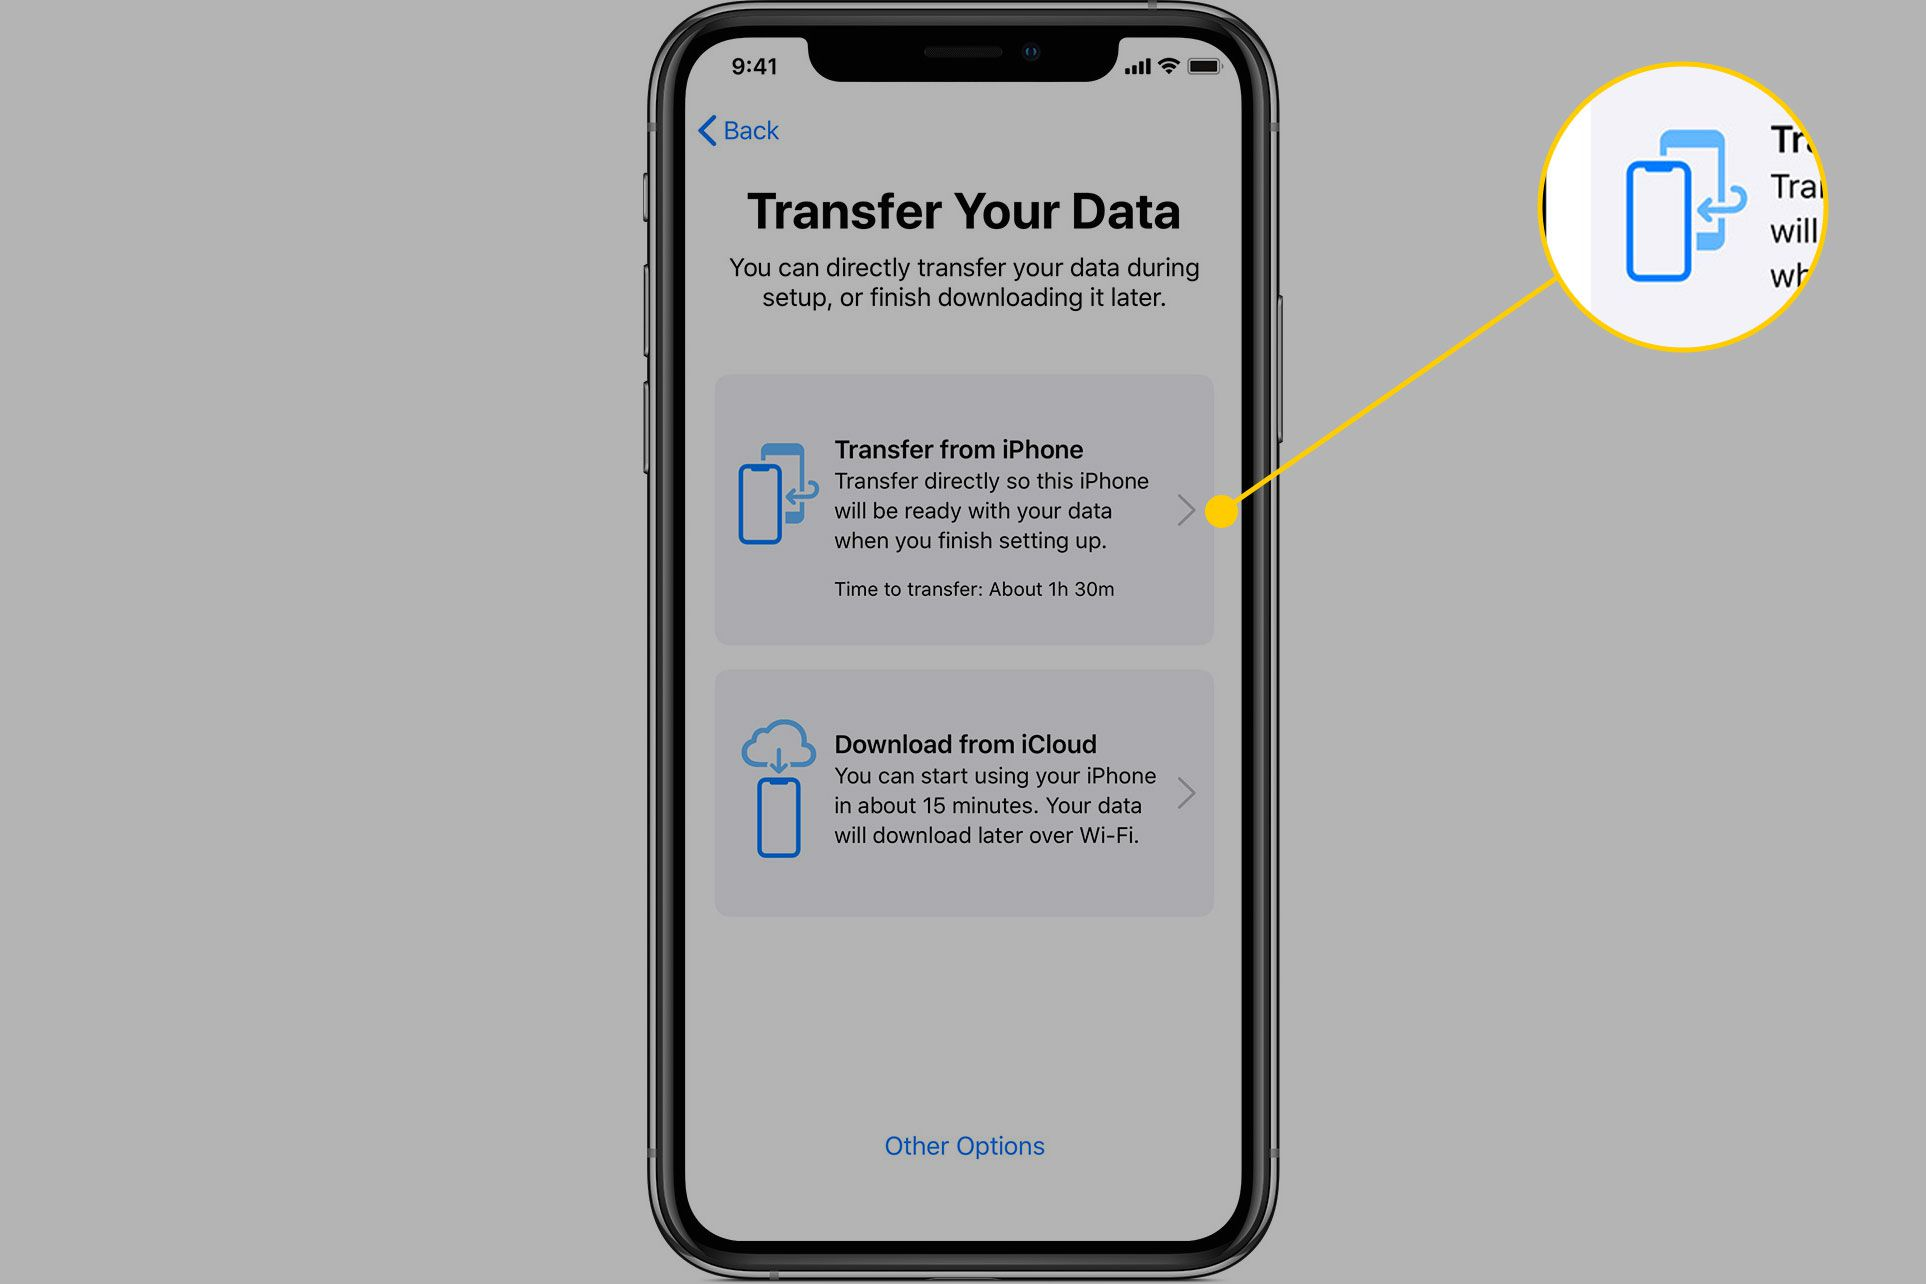 iPhone setup screen with Transfer from iPhone option highlighted